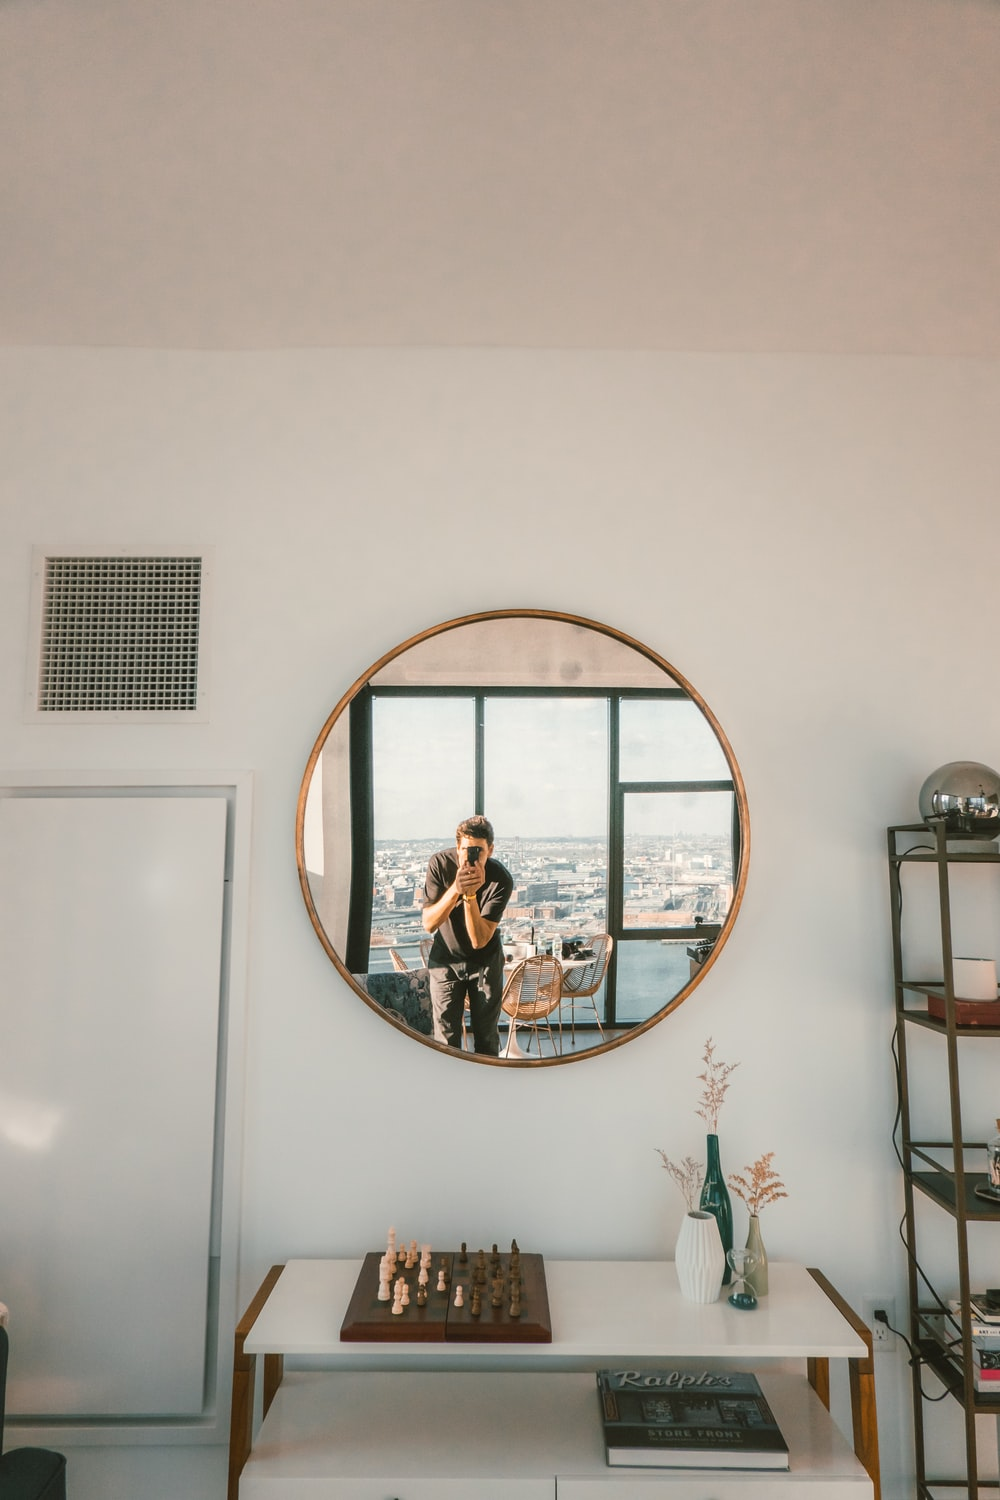 17+ [HQ] Mirror Selfie Pictures  Download Free Images on Unsplash